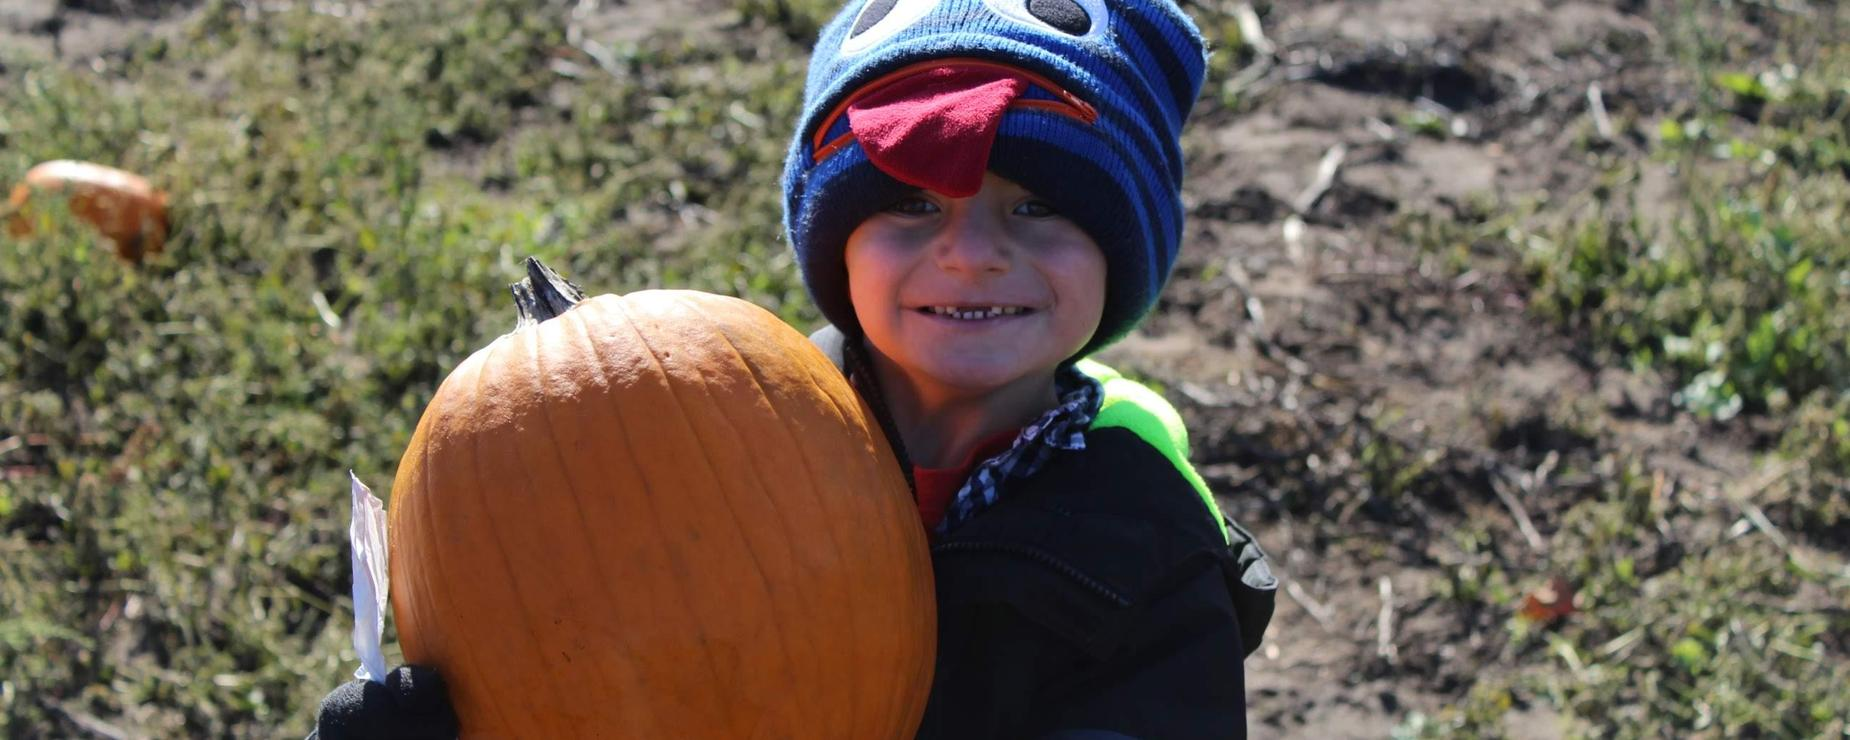 Young boy holding a pumpkin at the pumpkin patch.